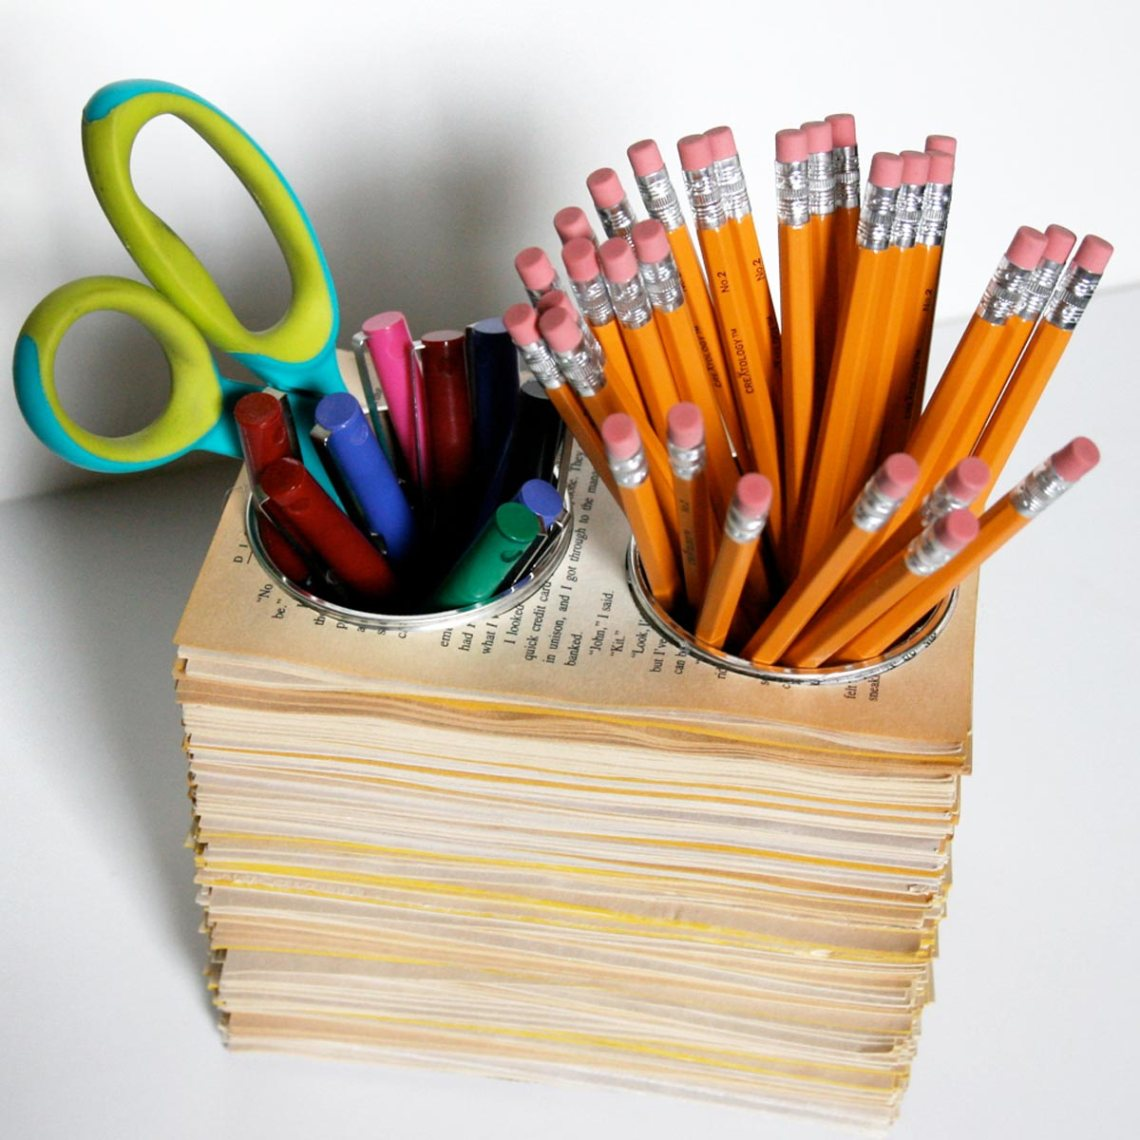 09-book-page-pencil-cups-06